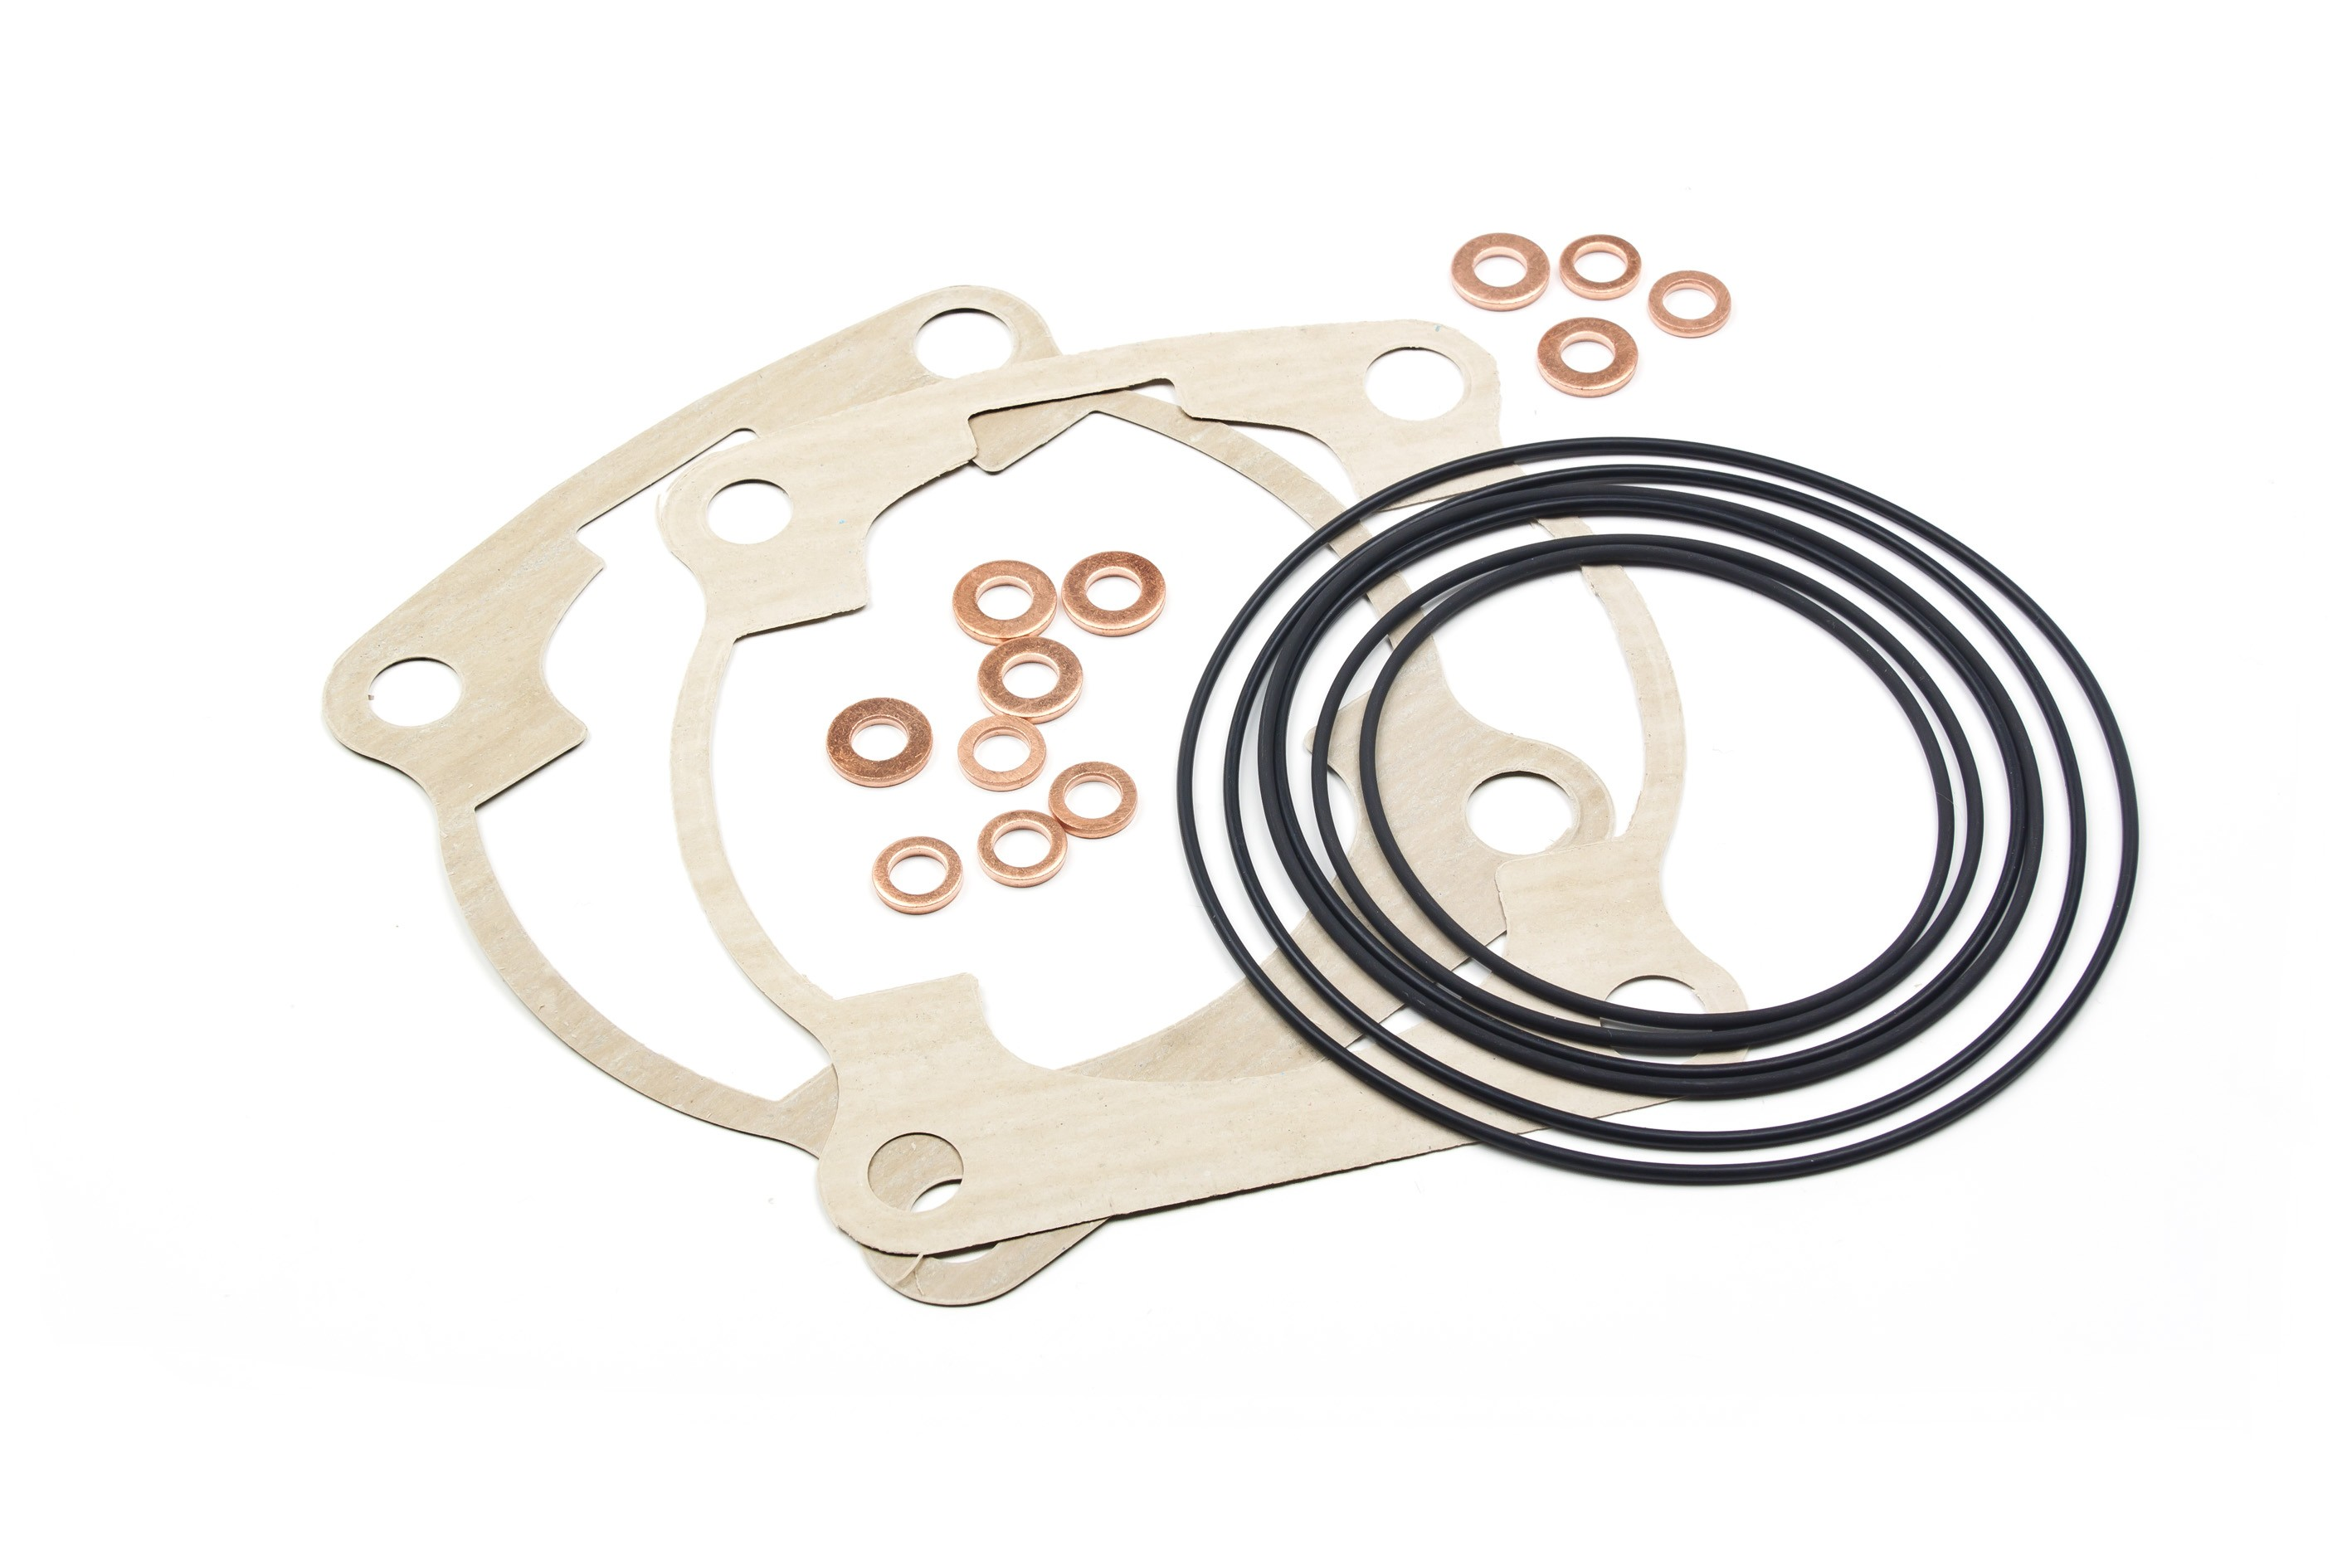 Kit o-rings head, and top end gaskets